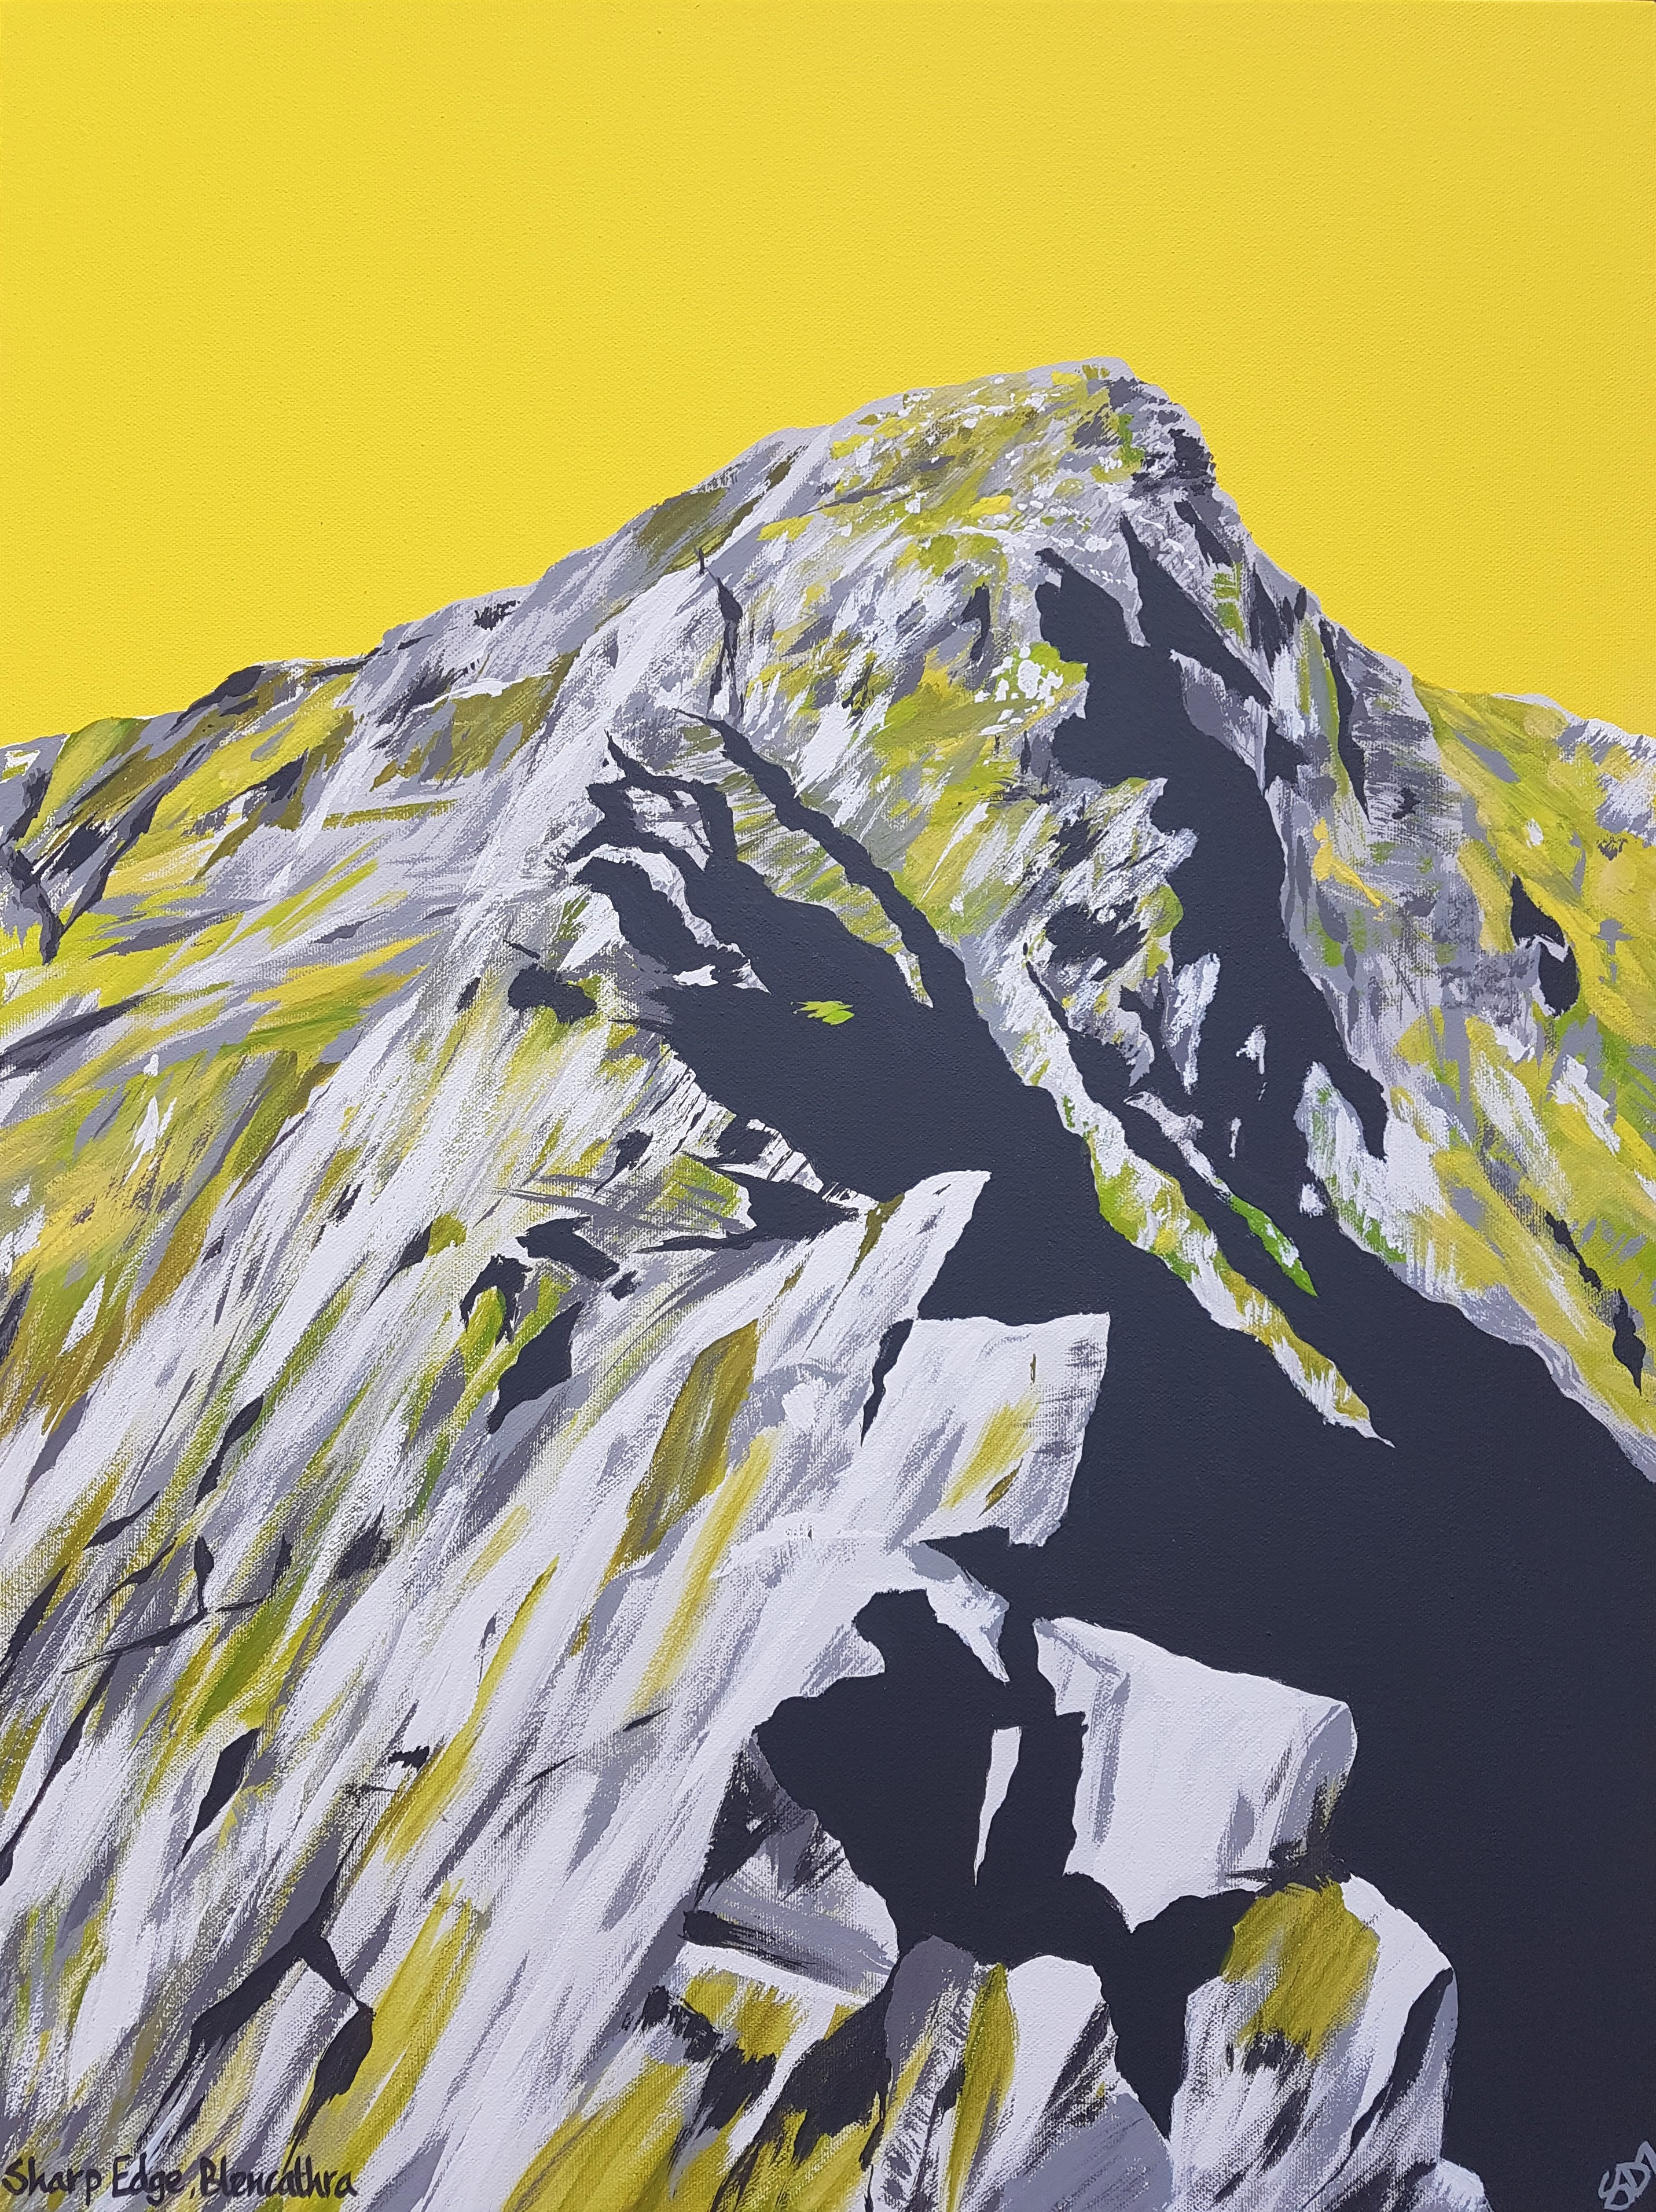 SOLD Sharp Edge, Blencathra